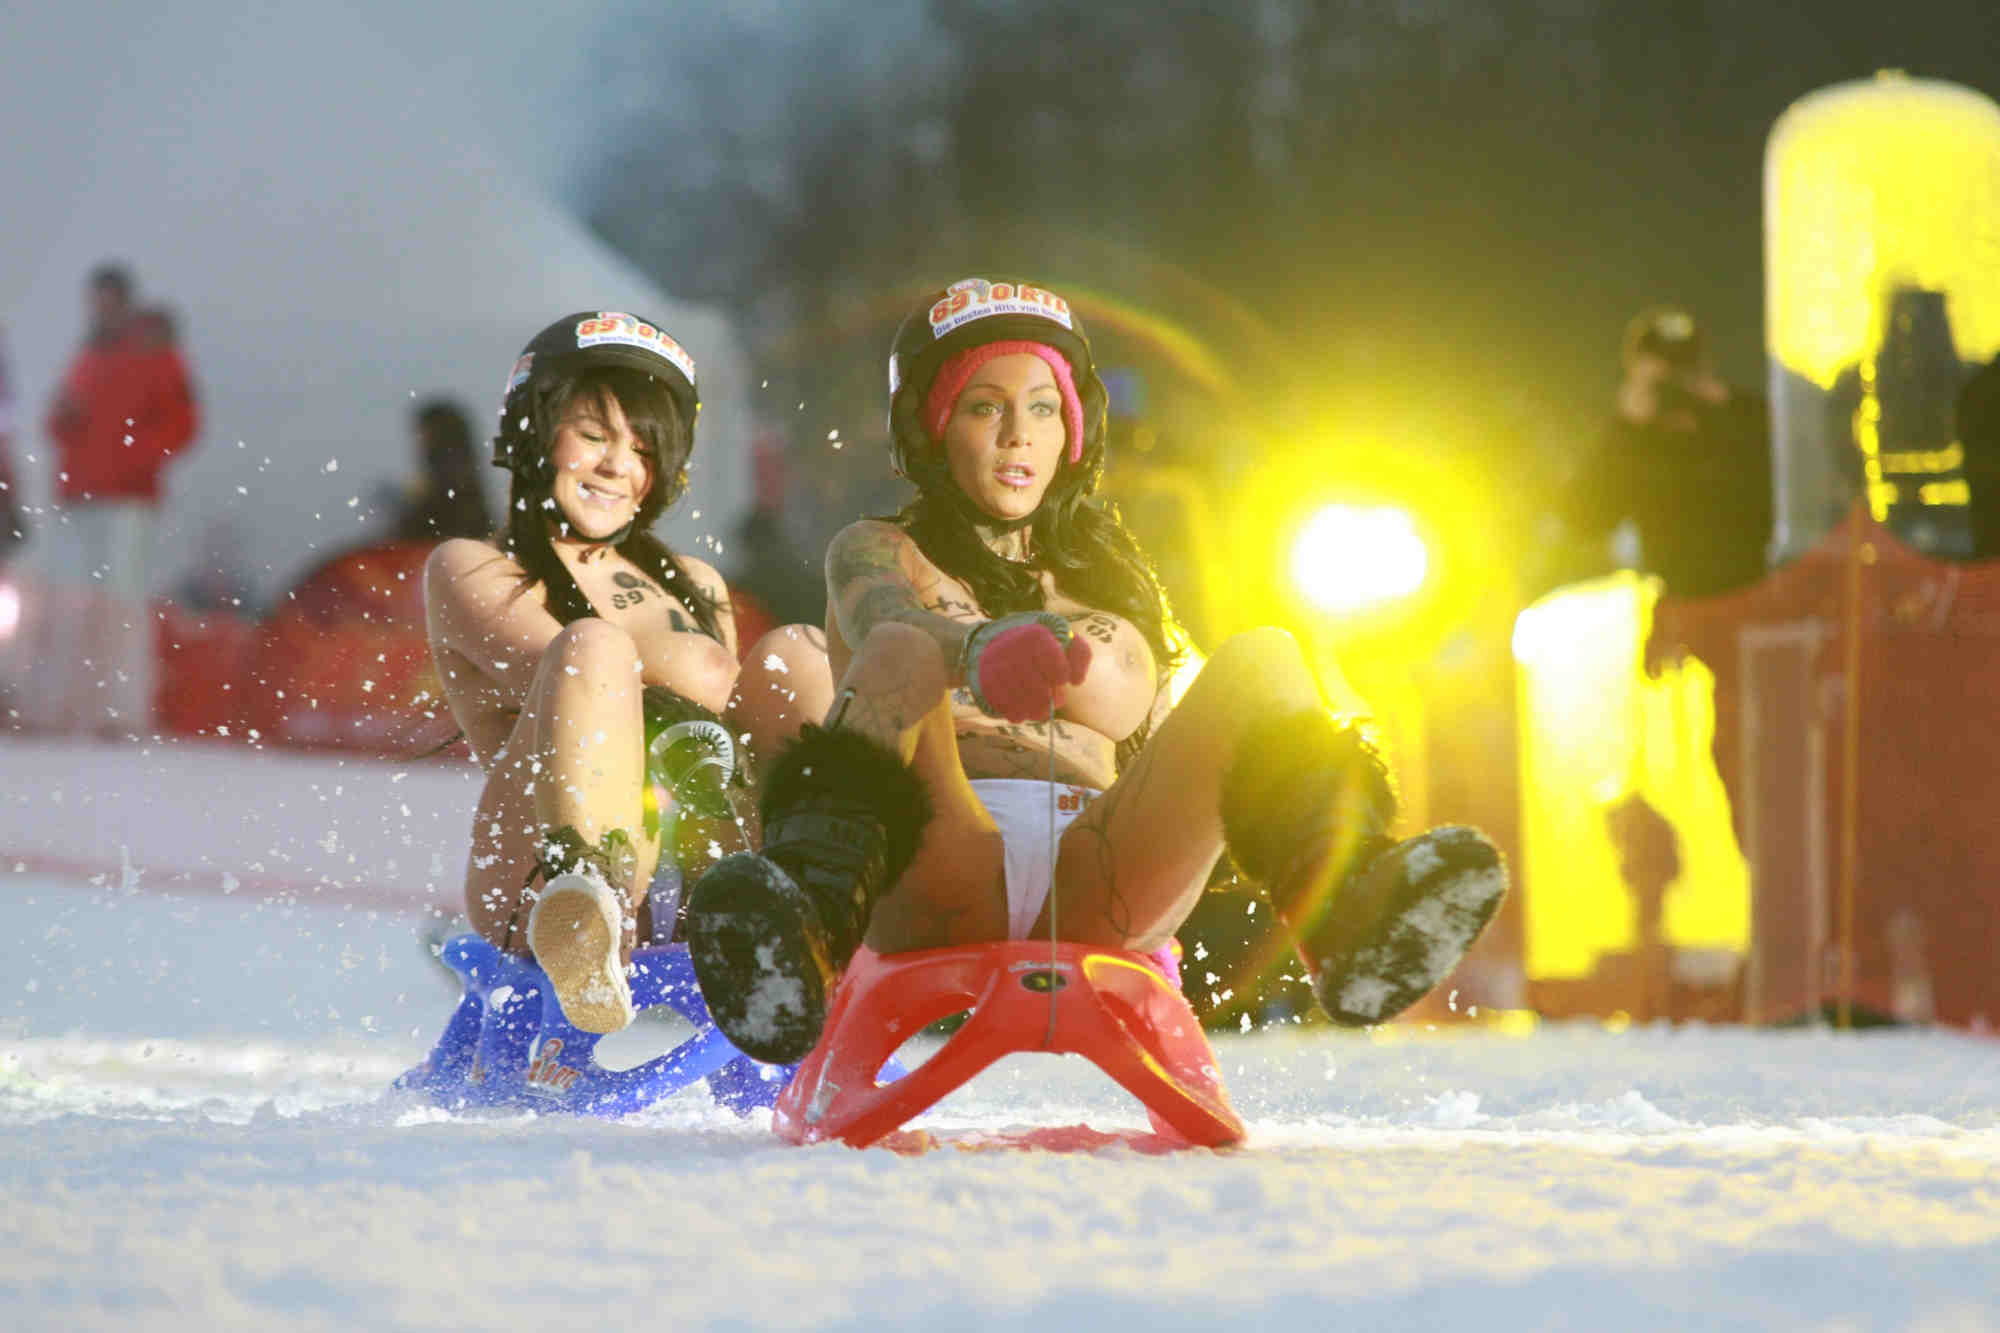 naked sledding in germany